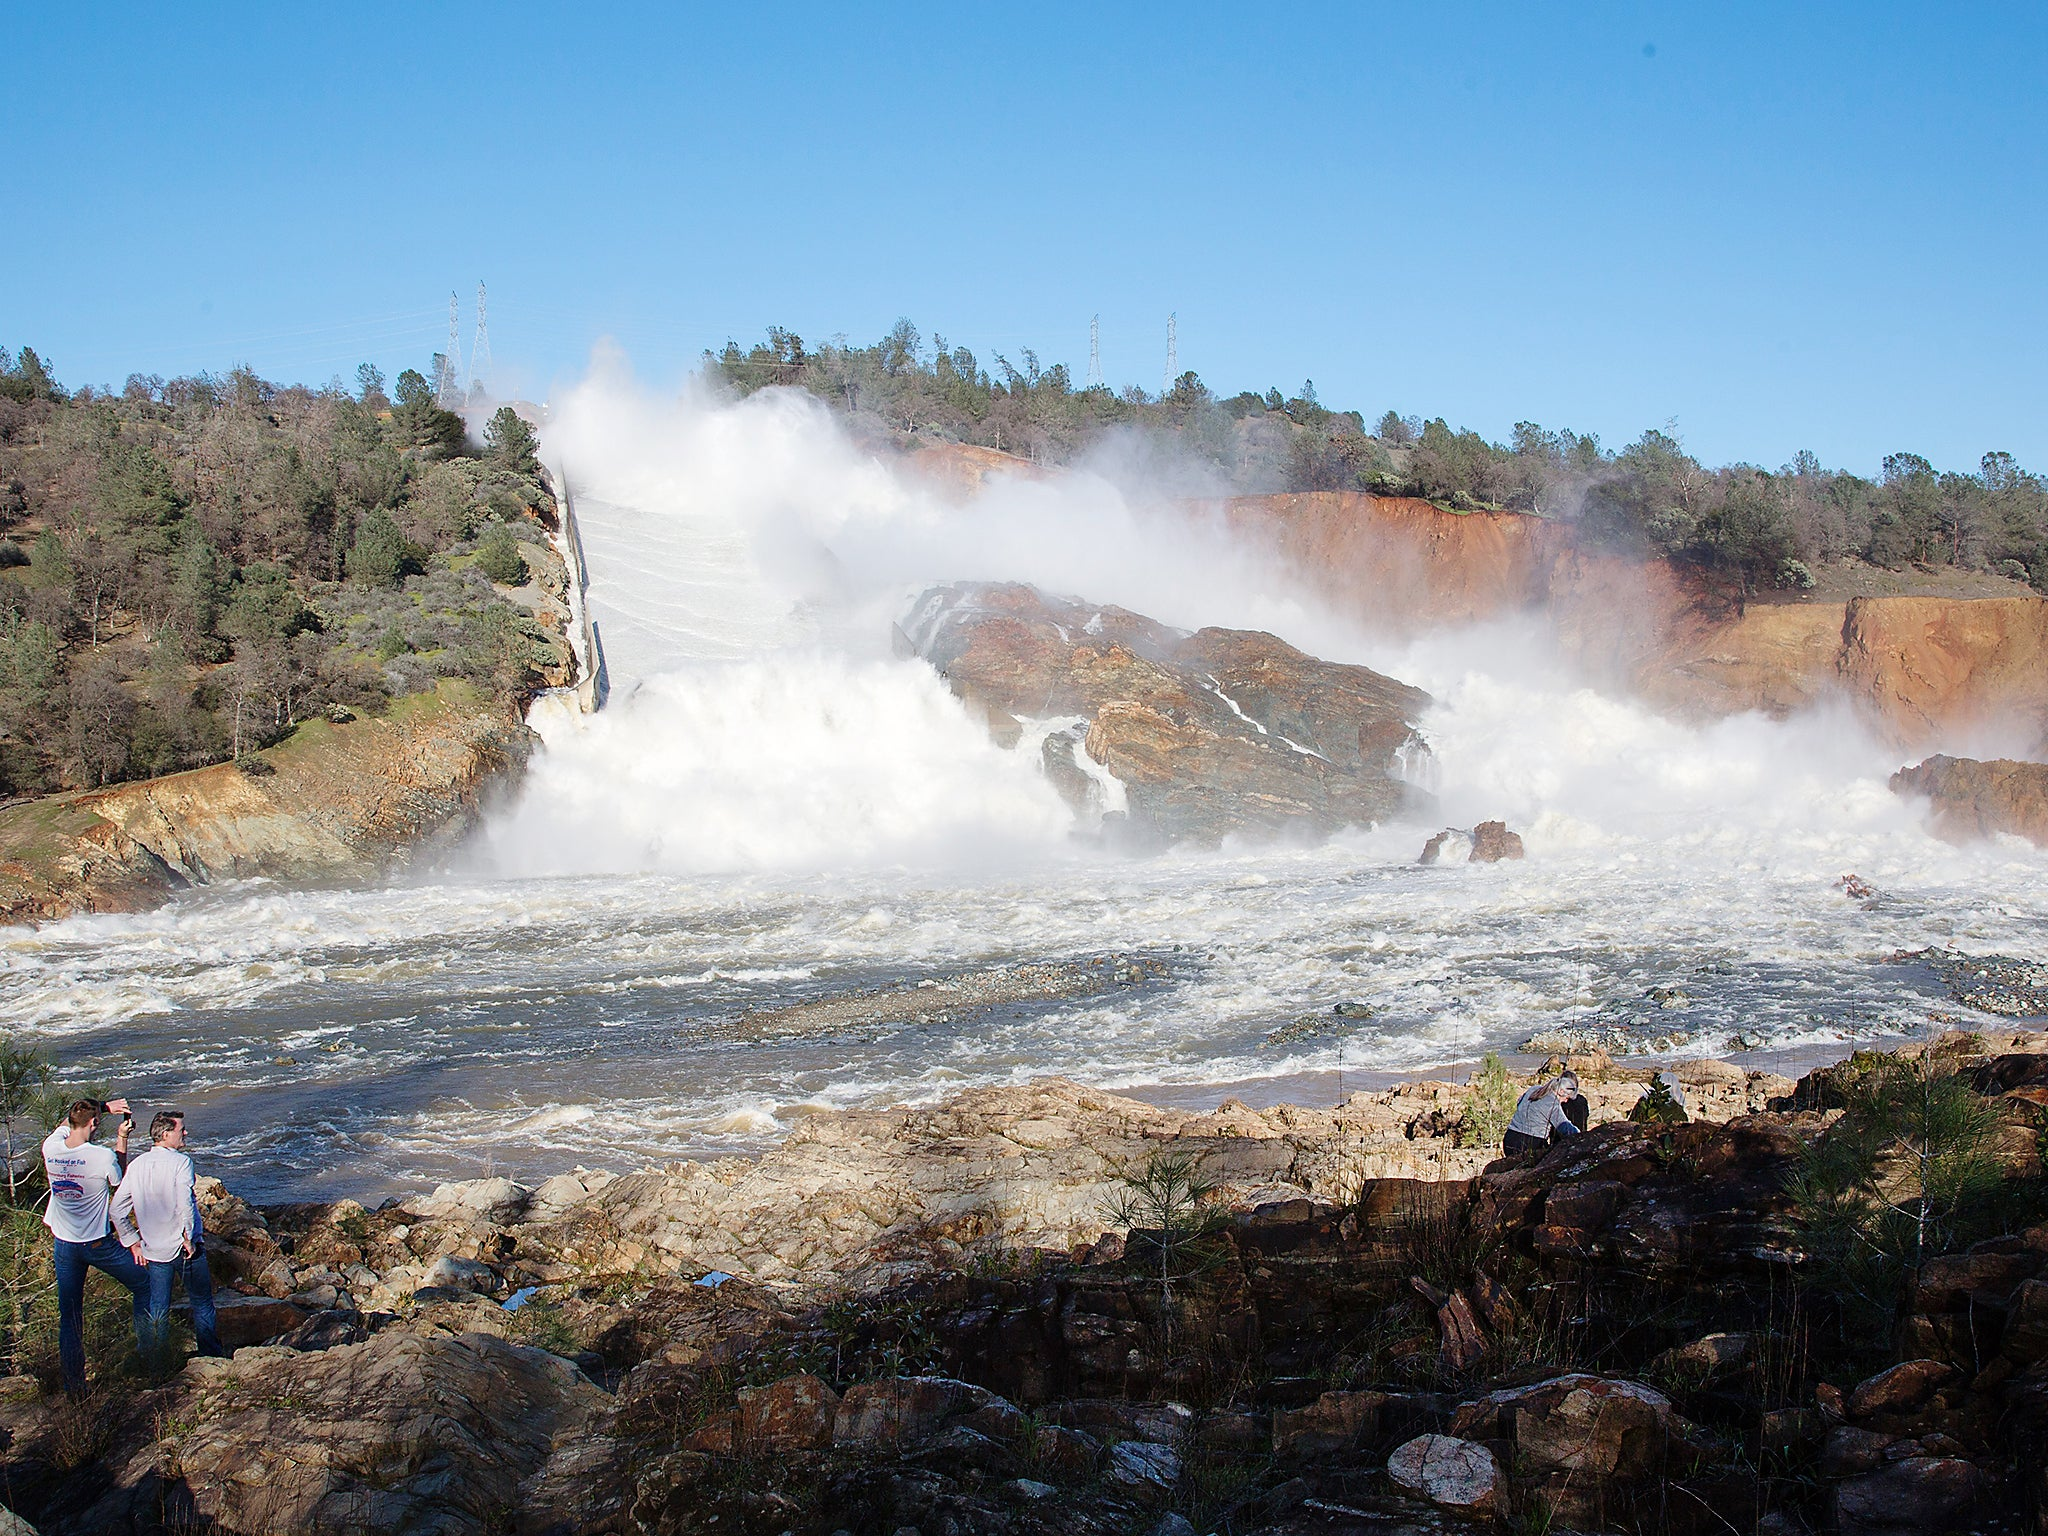 Oroville dam: Incredible photos show water cascading down hill amid